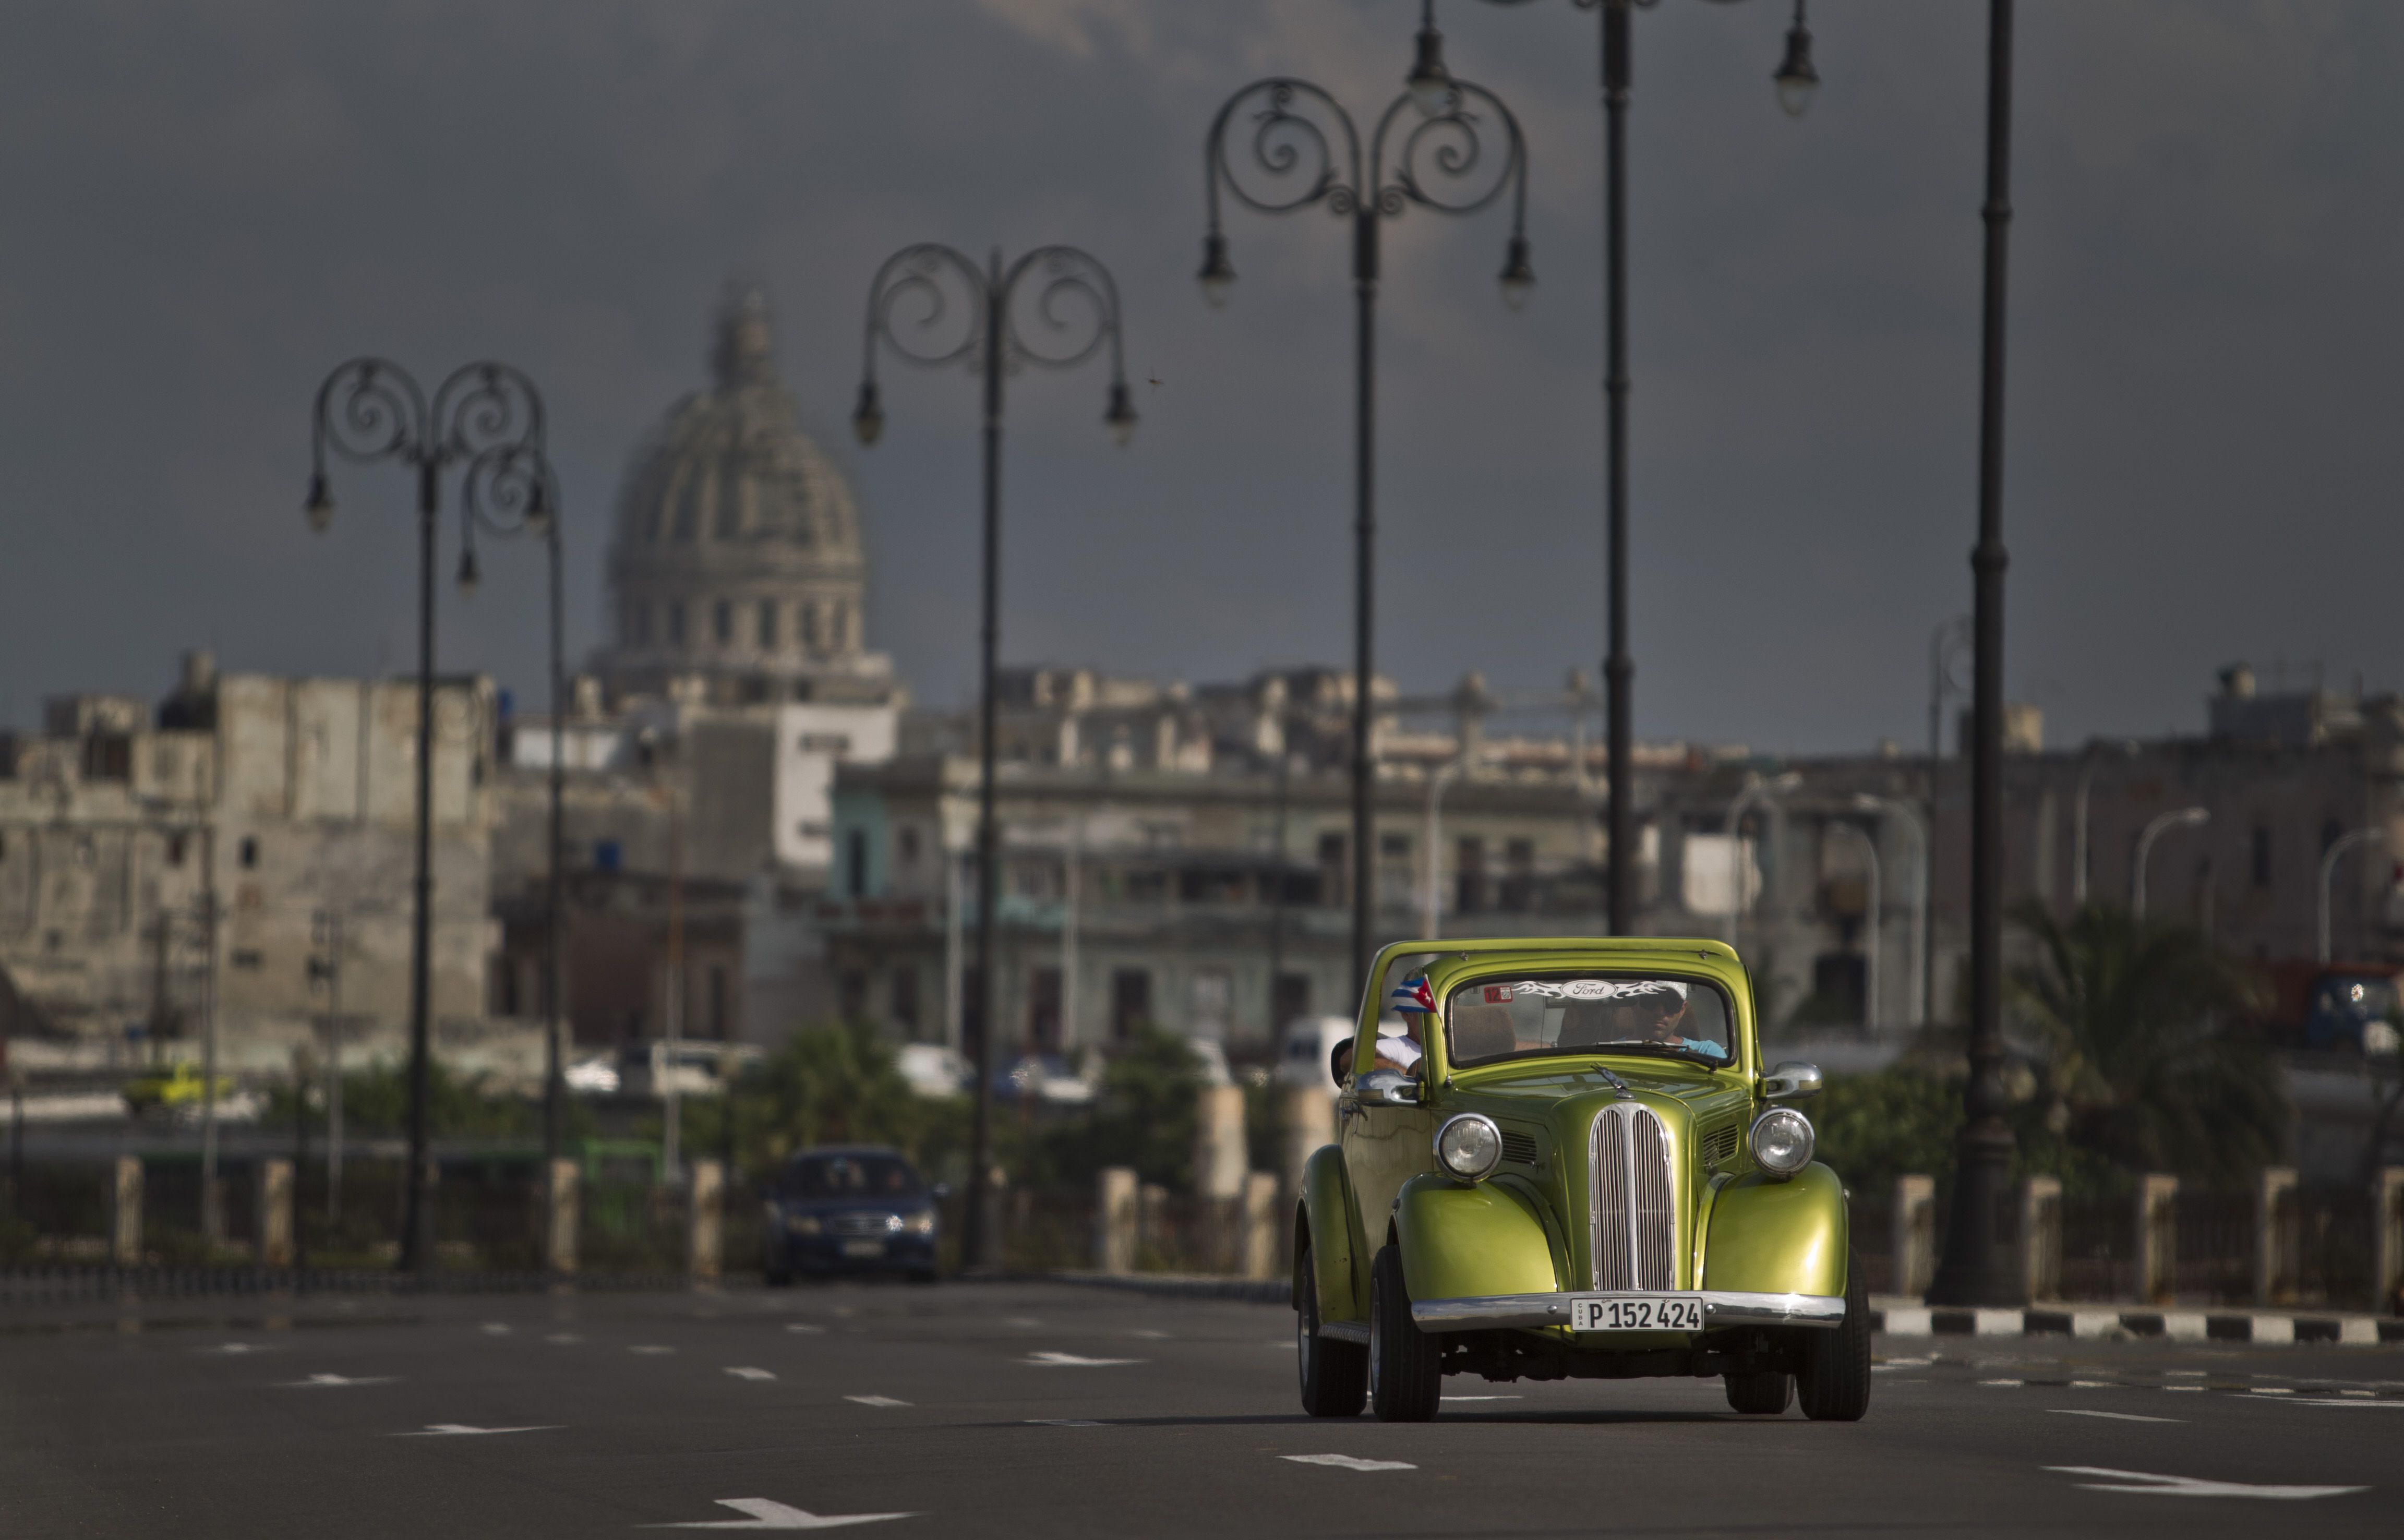 A man drives a classic American car on The Malecon in Havana, Cuba.